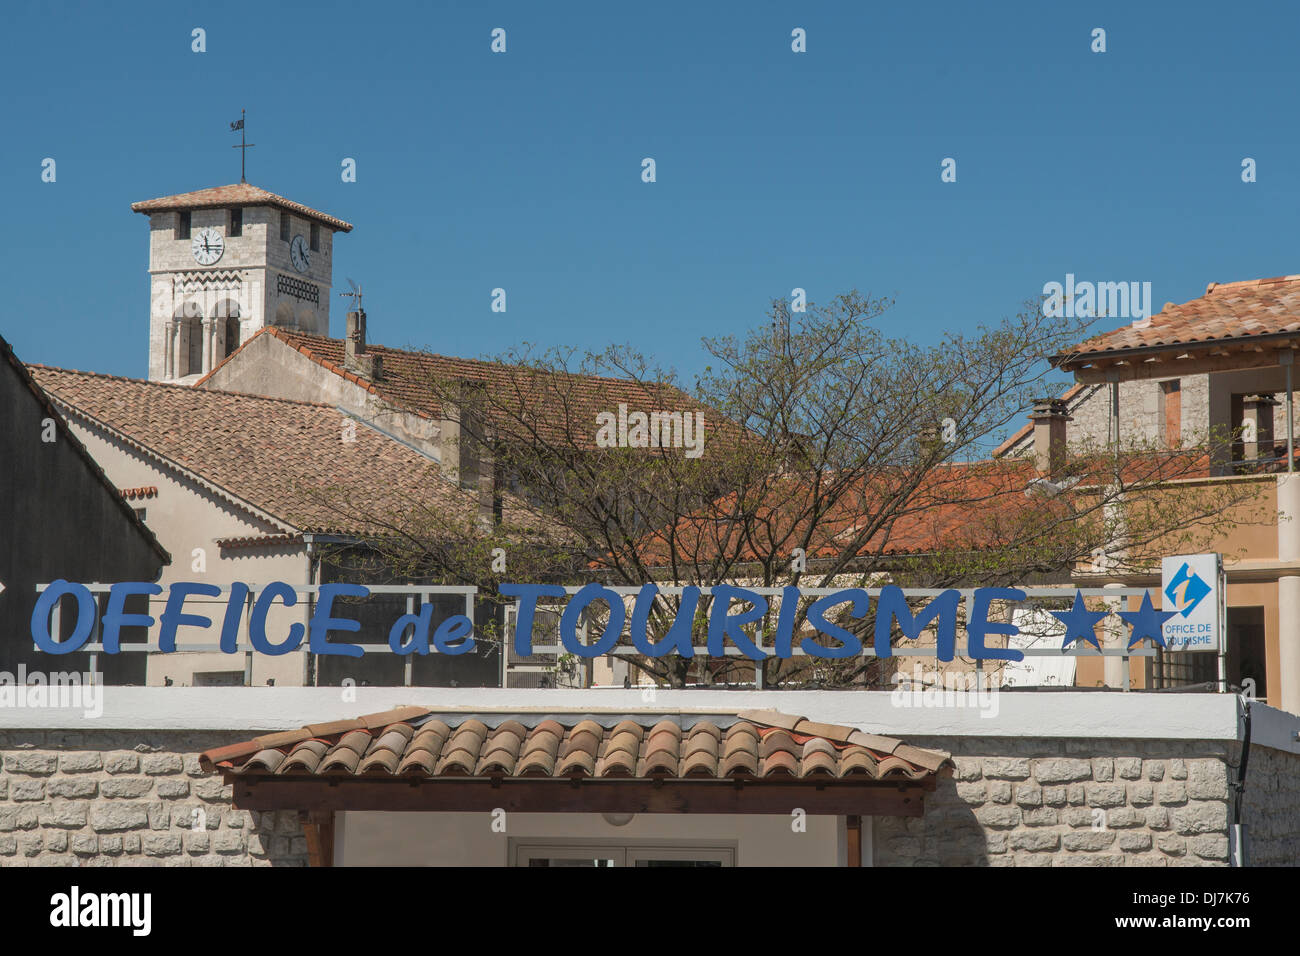 Office Tourisme Ardeche Office De Tourisme At Ruoms In The Ardeche 07 Departement Of